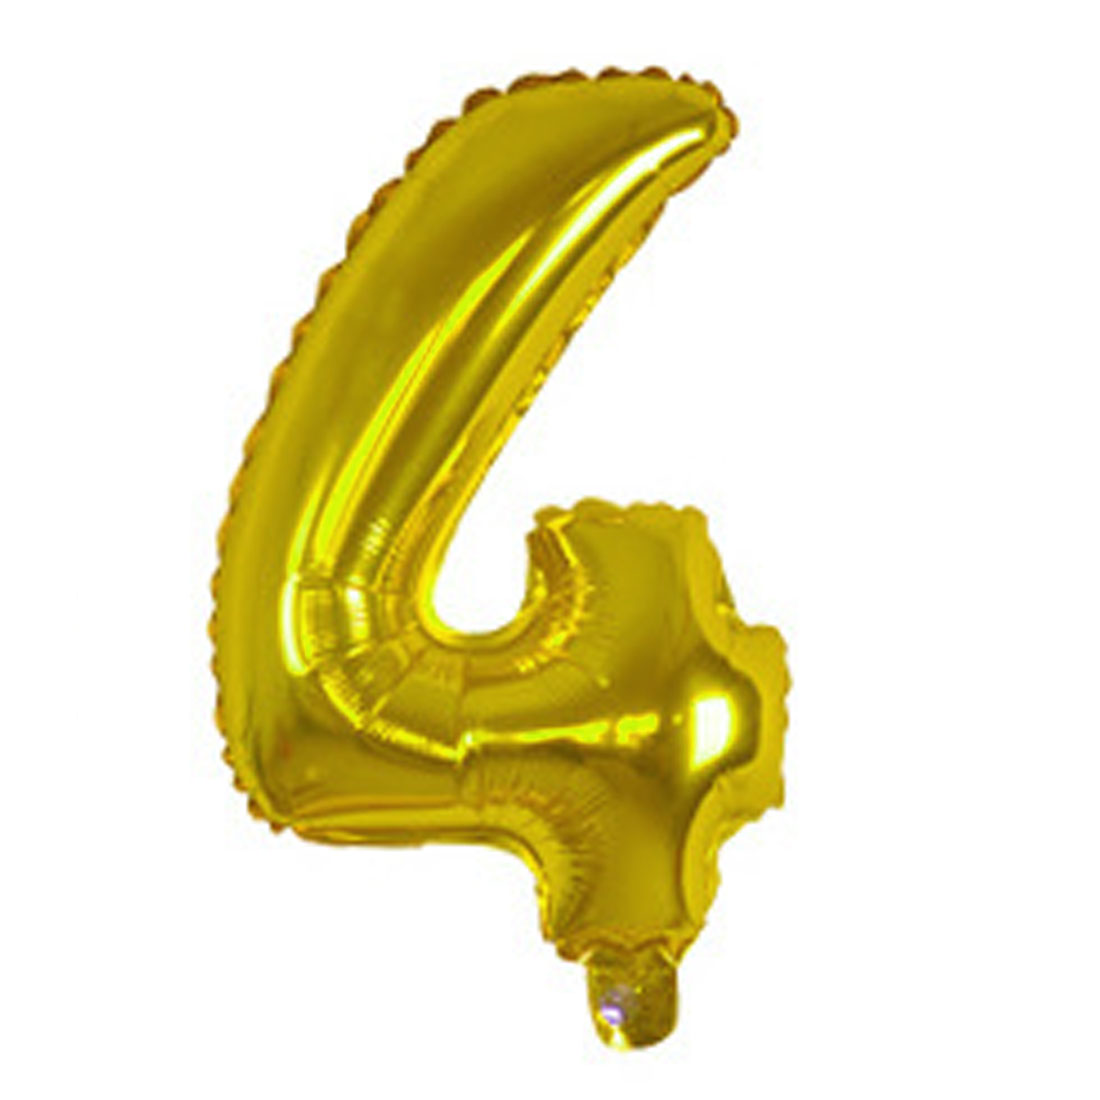 Unique Bargains Foil Number 4 Shape Helium Balloon Birthday Wedding Decor Gold Tone 30""